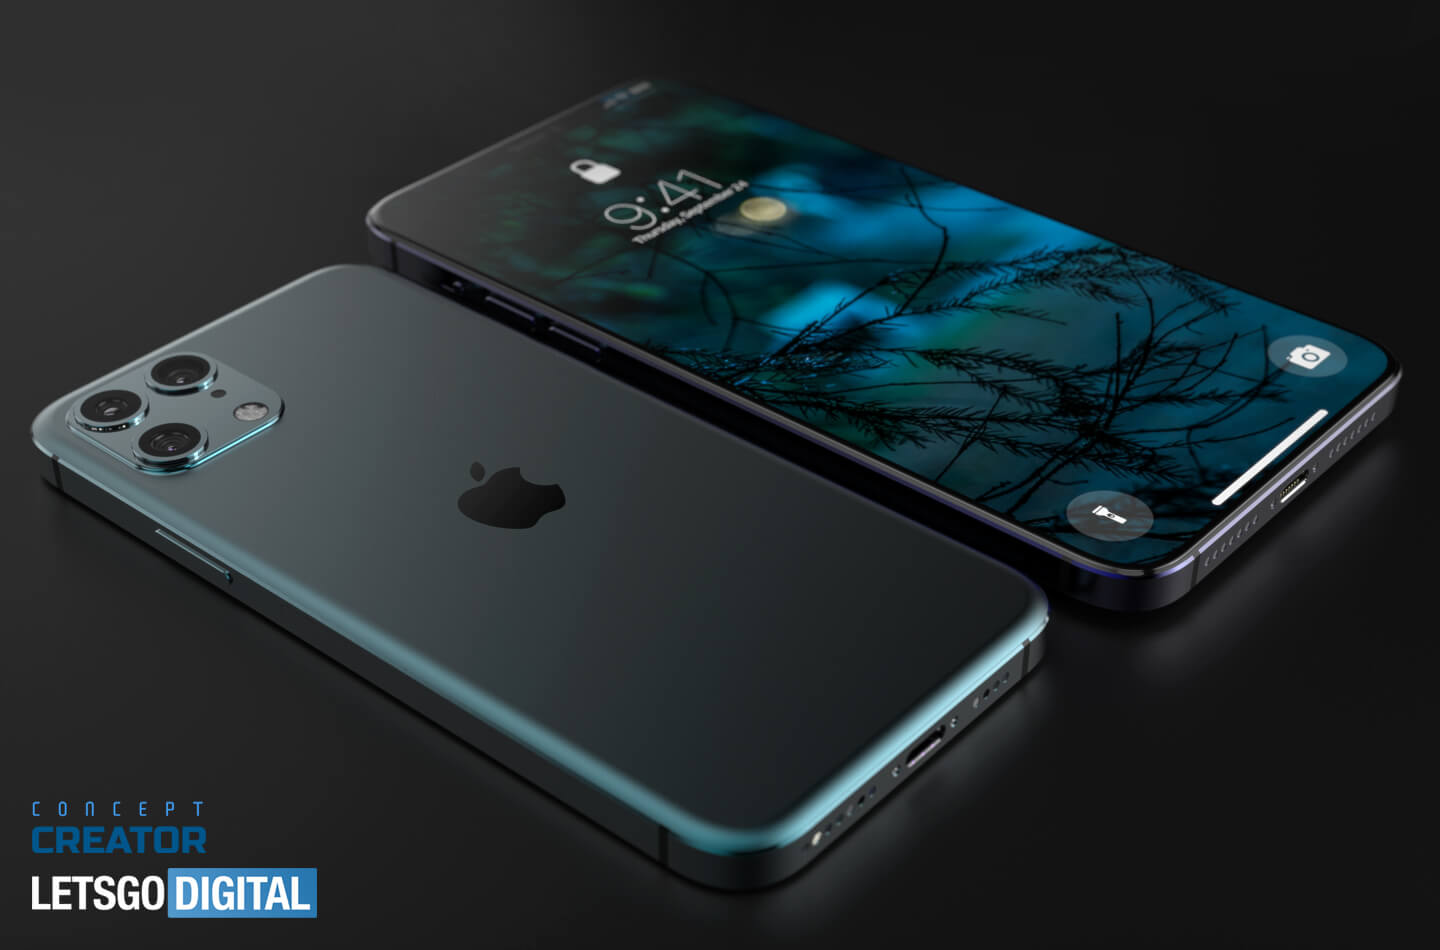 iPhone 12 Series includes an iPhone Mini and 5G support